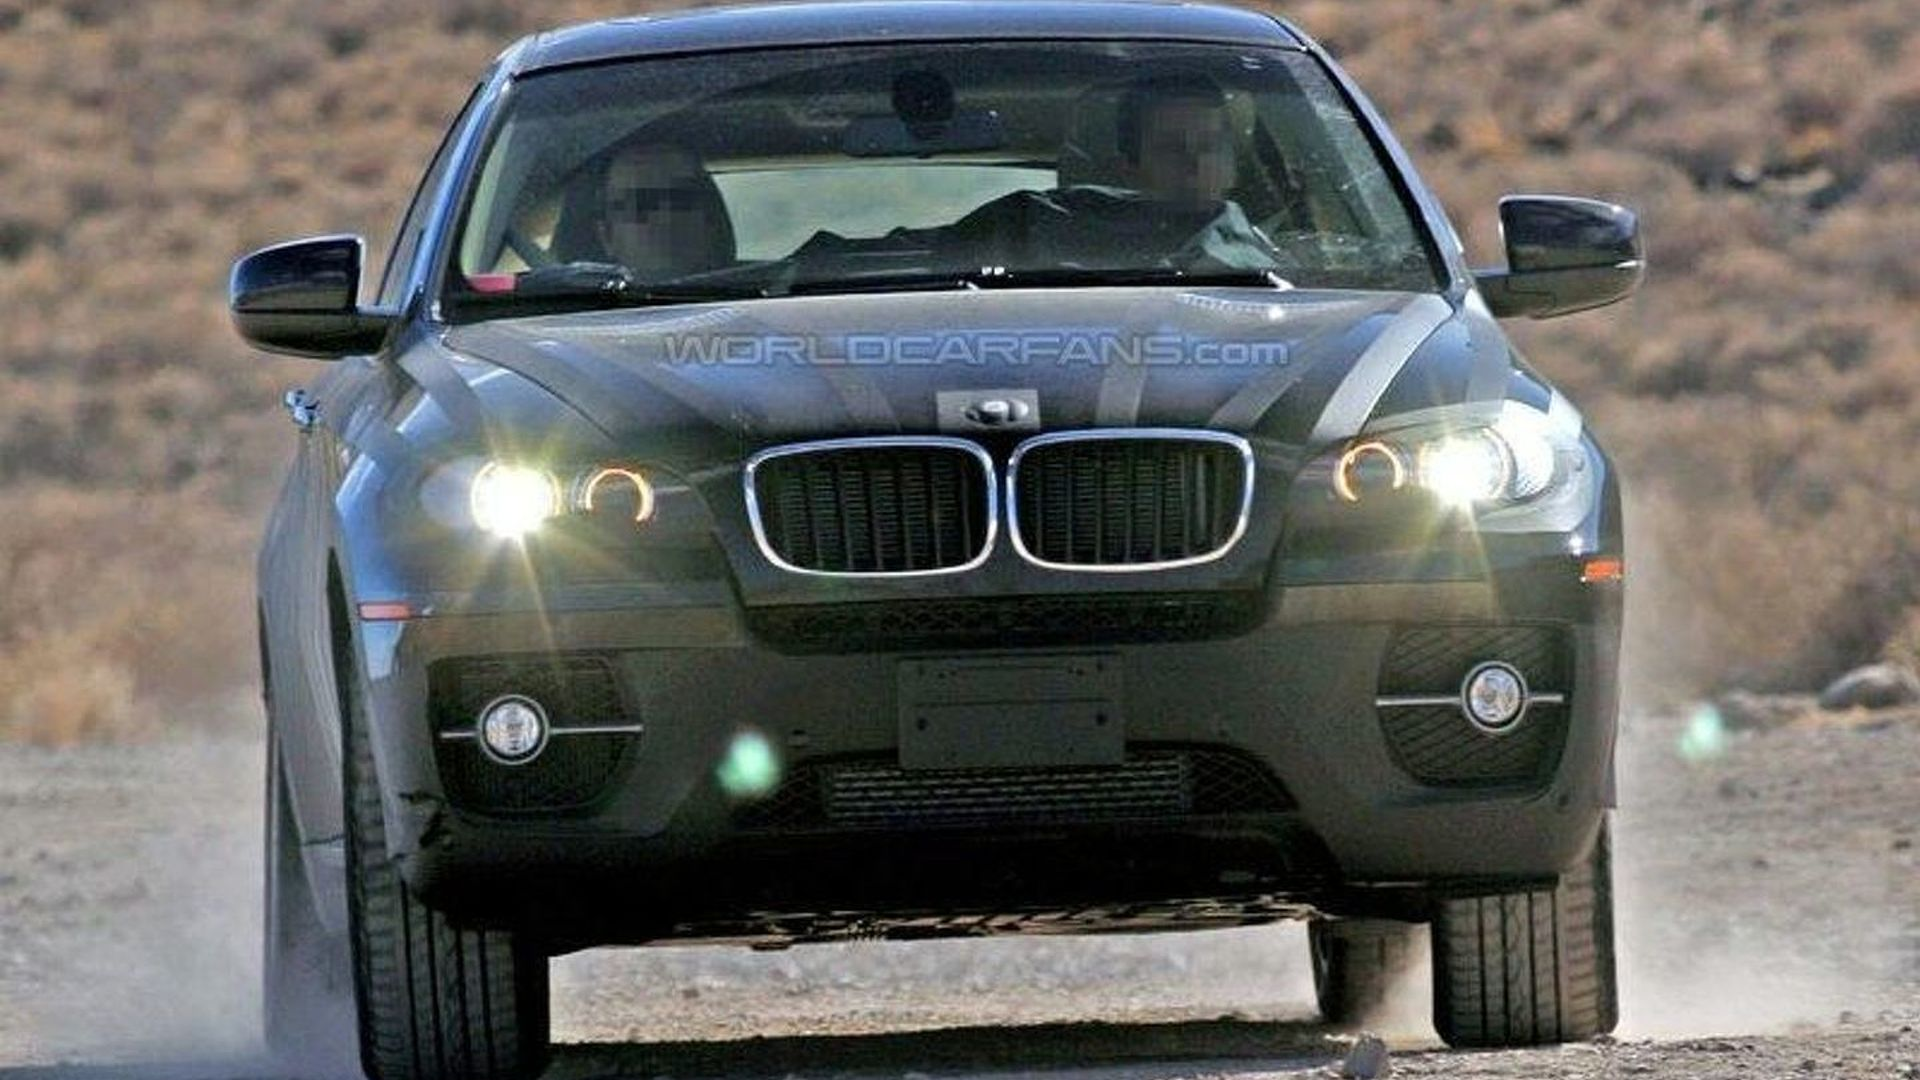 New BMW X6 Shows Front and Rear Design Ahead of Frankfurt Debut